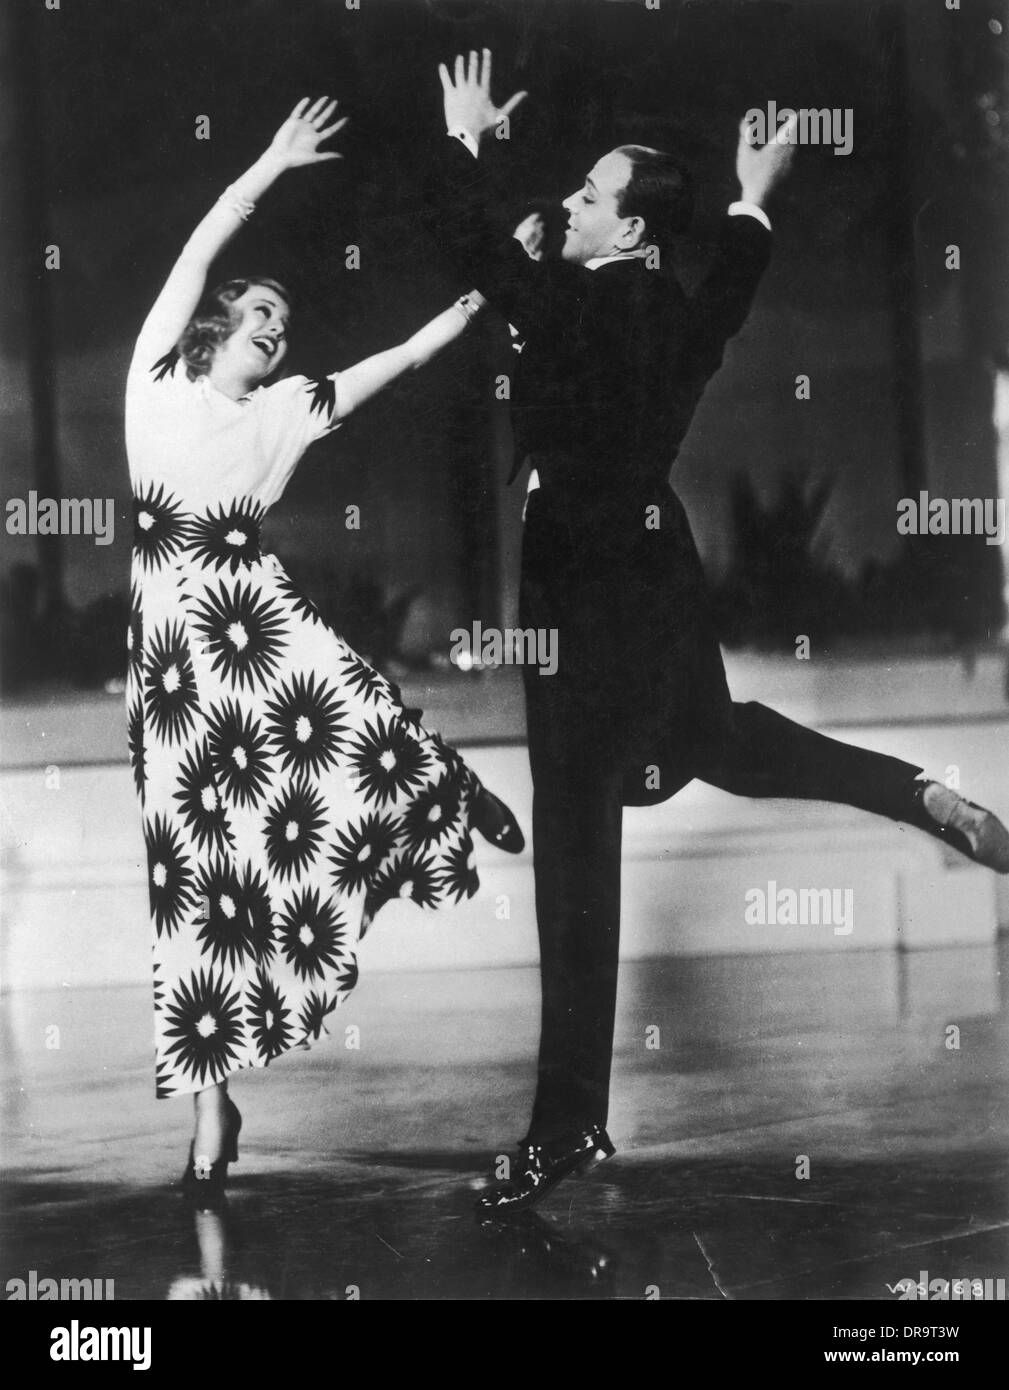 Fred Astaire And Ginger Rogers DancingStock Photos and Images